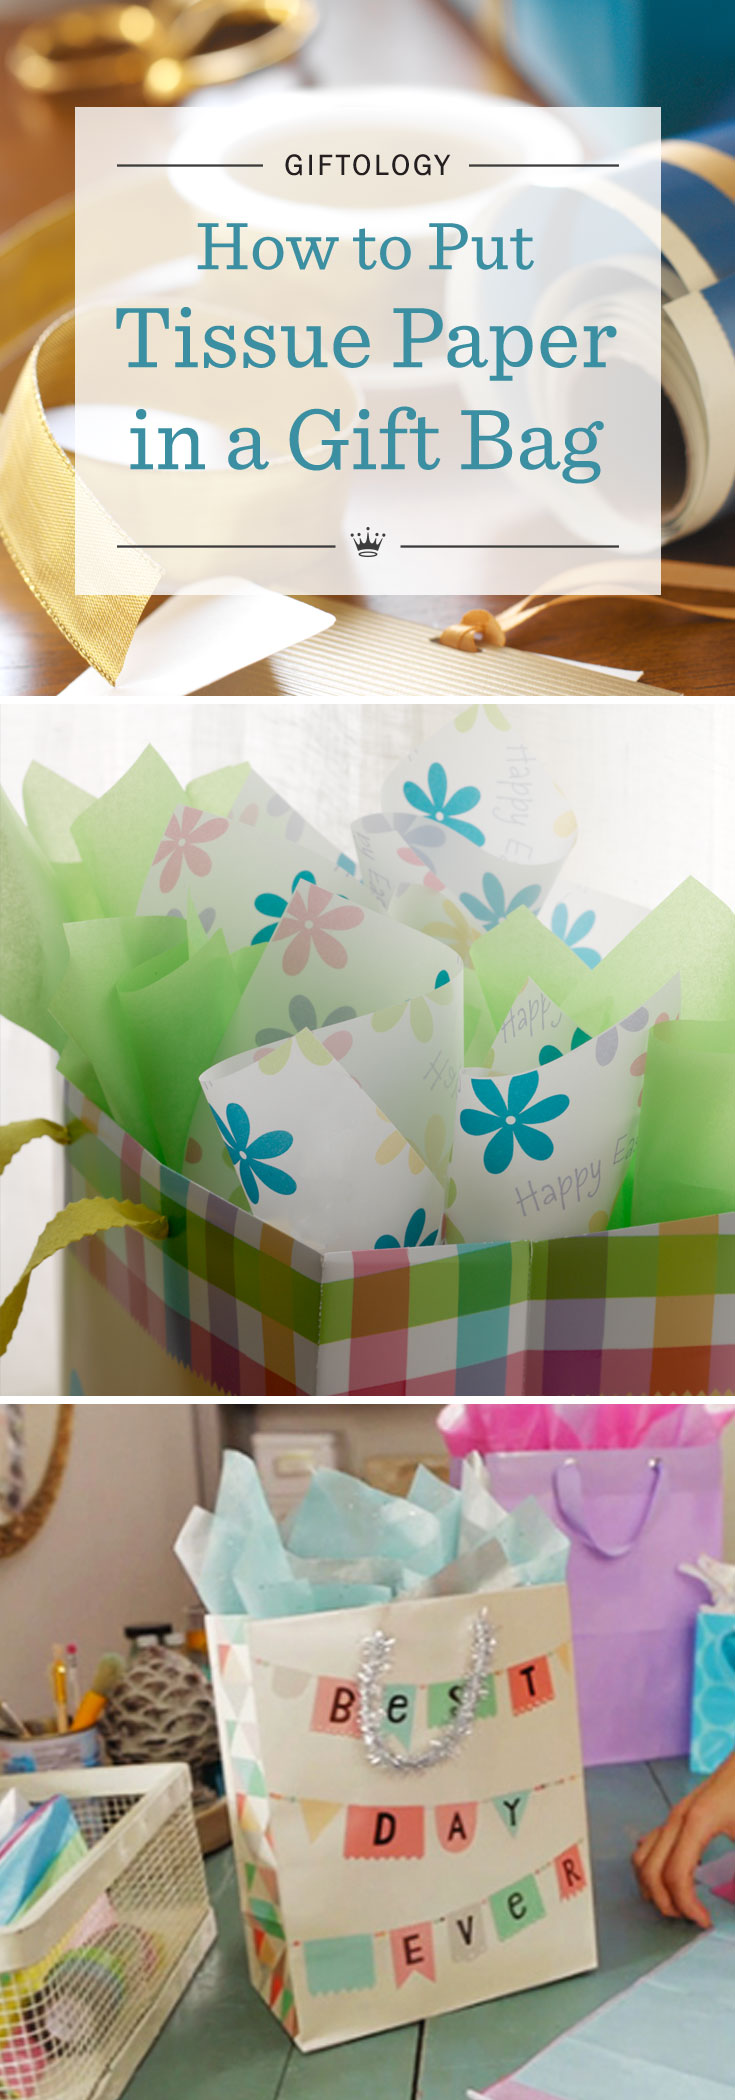 Giftology Video How To Put Tissue Paper In A Gift Bag Hallmark Ideas Inspiration